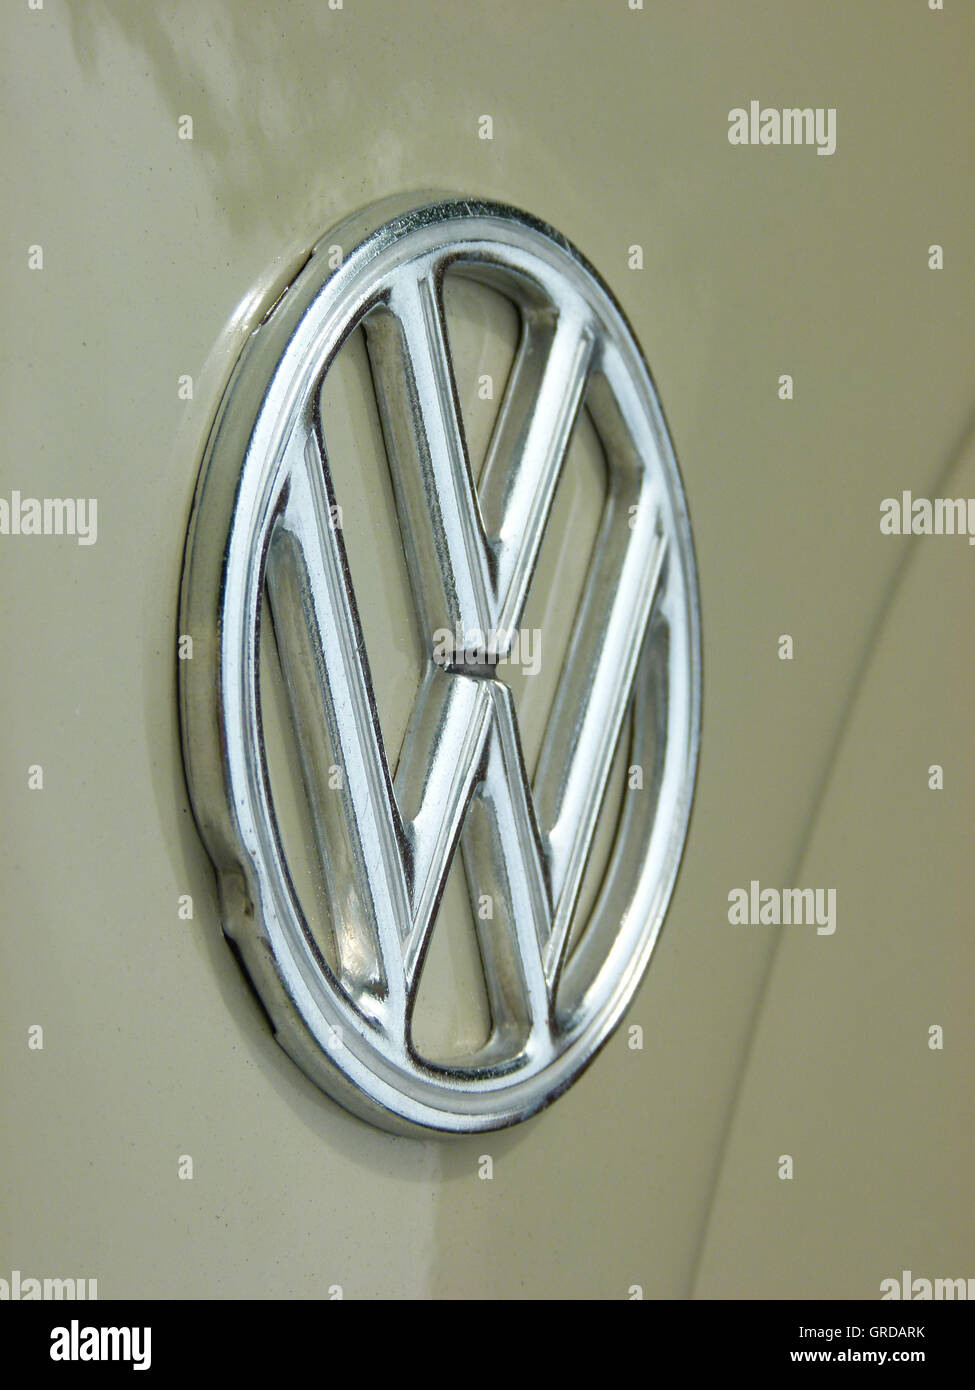 Vw Logo, Vw Affair, New Constitution Symbol - Stock Image